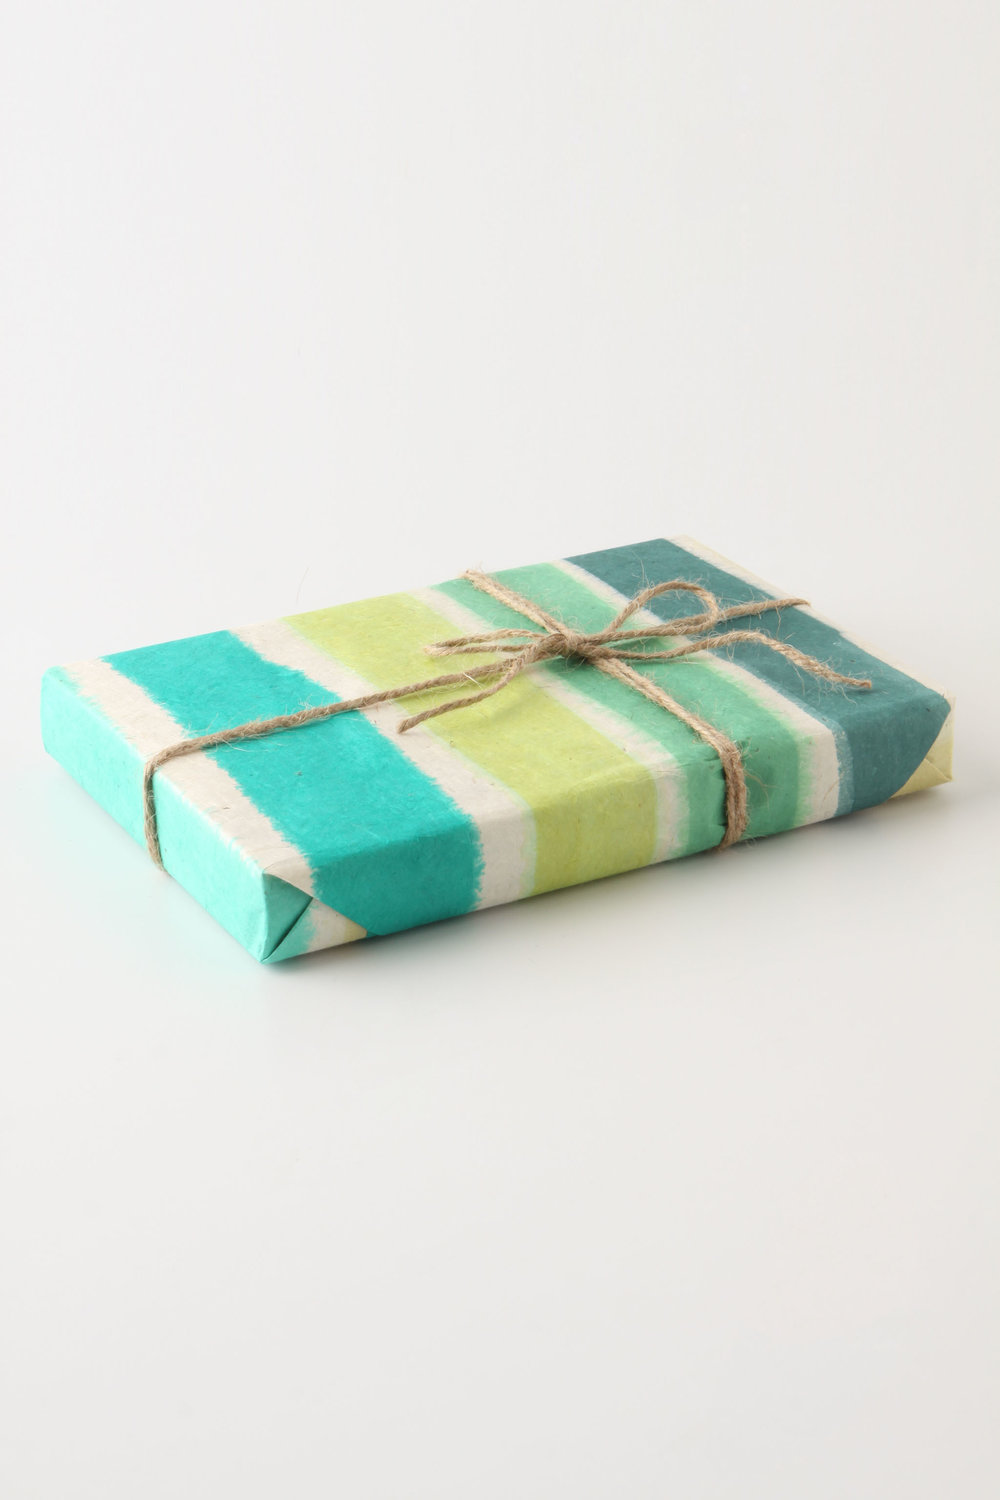 painted-stripes-wrapping-paper.jpg